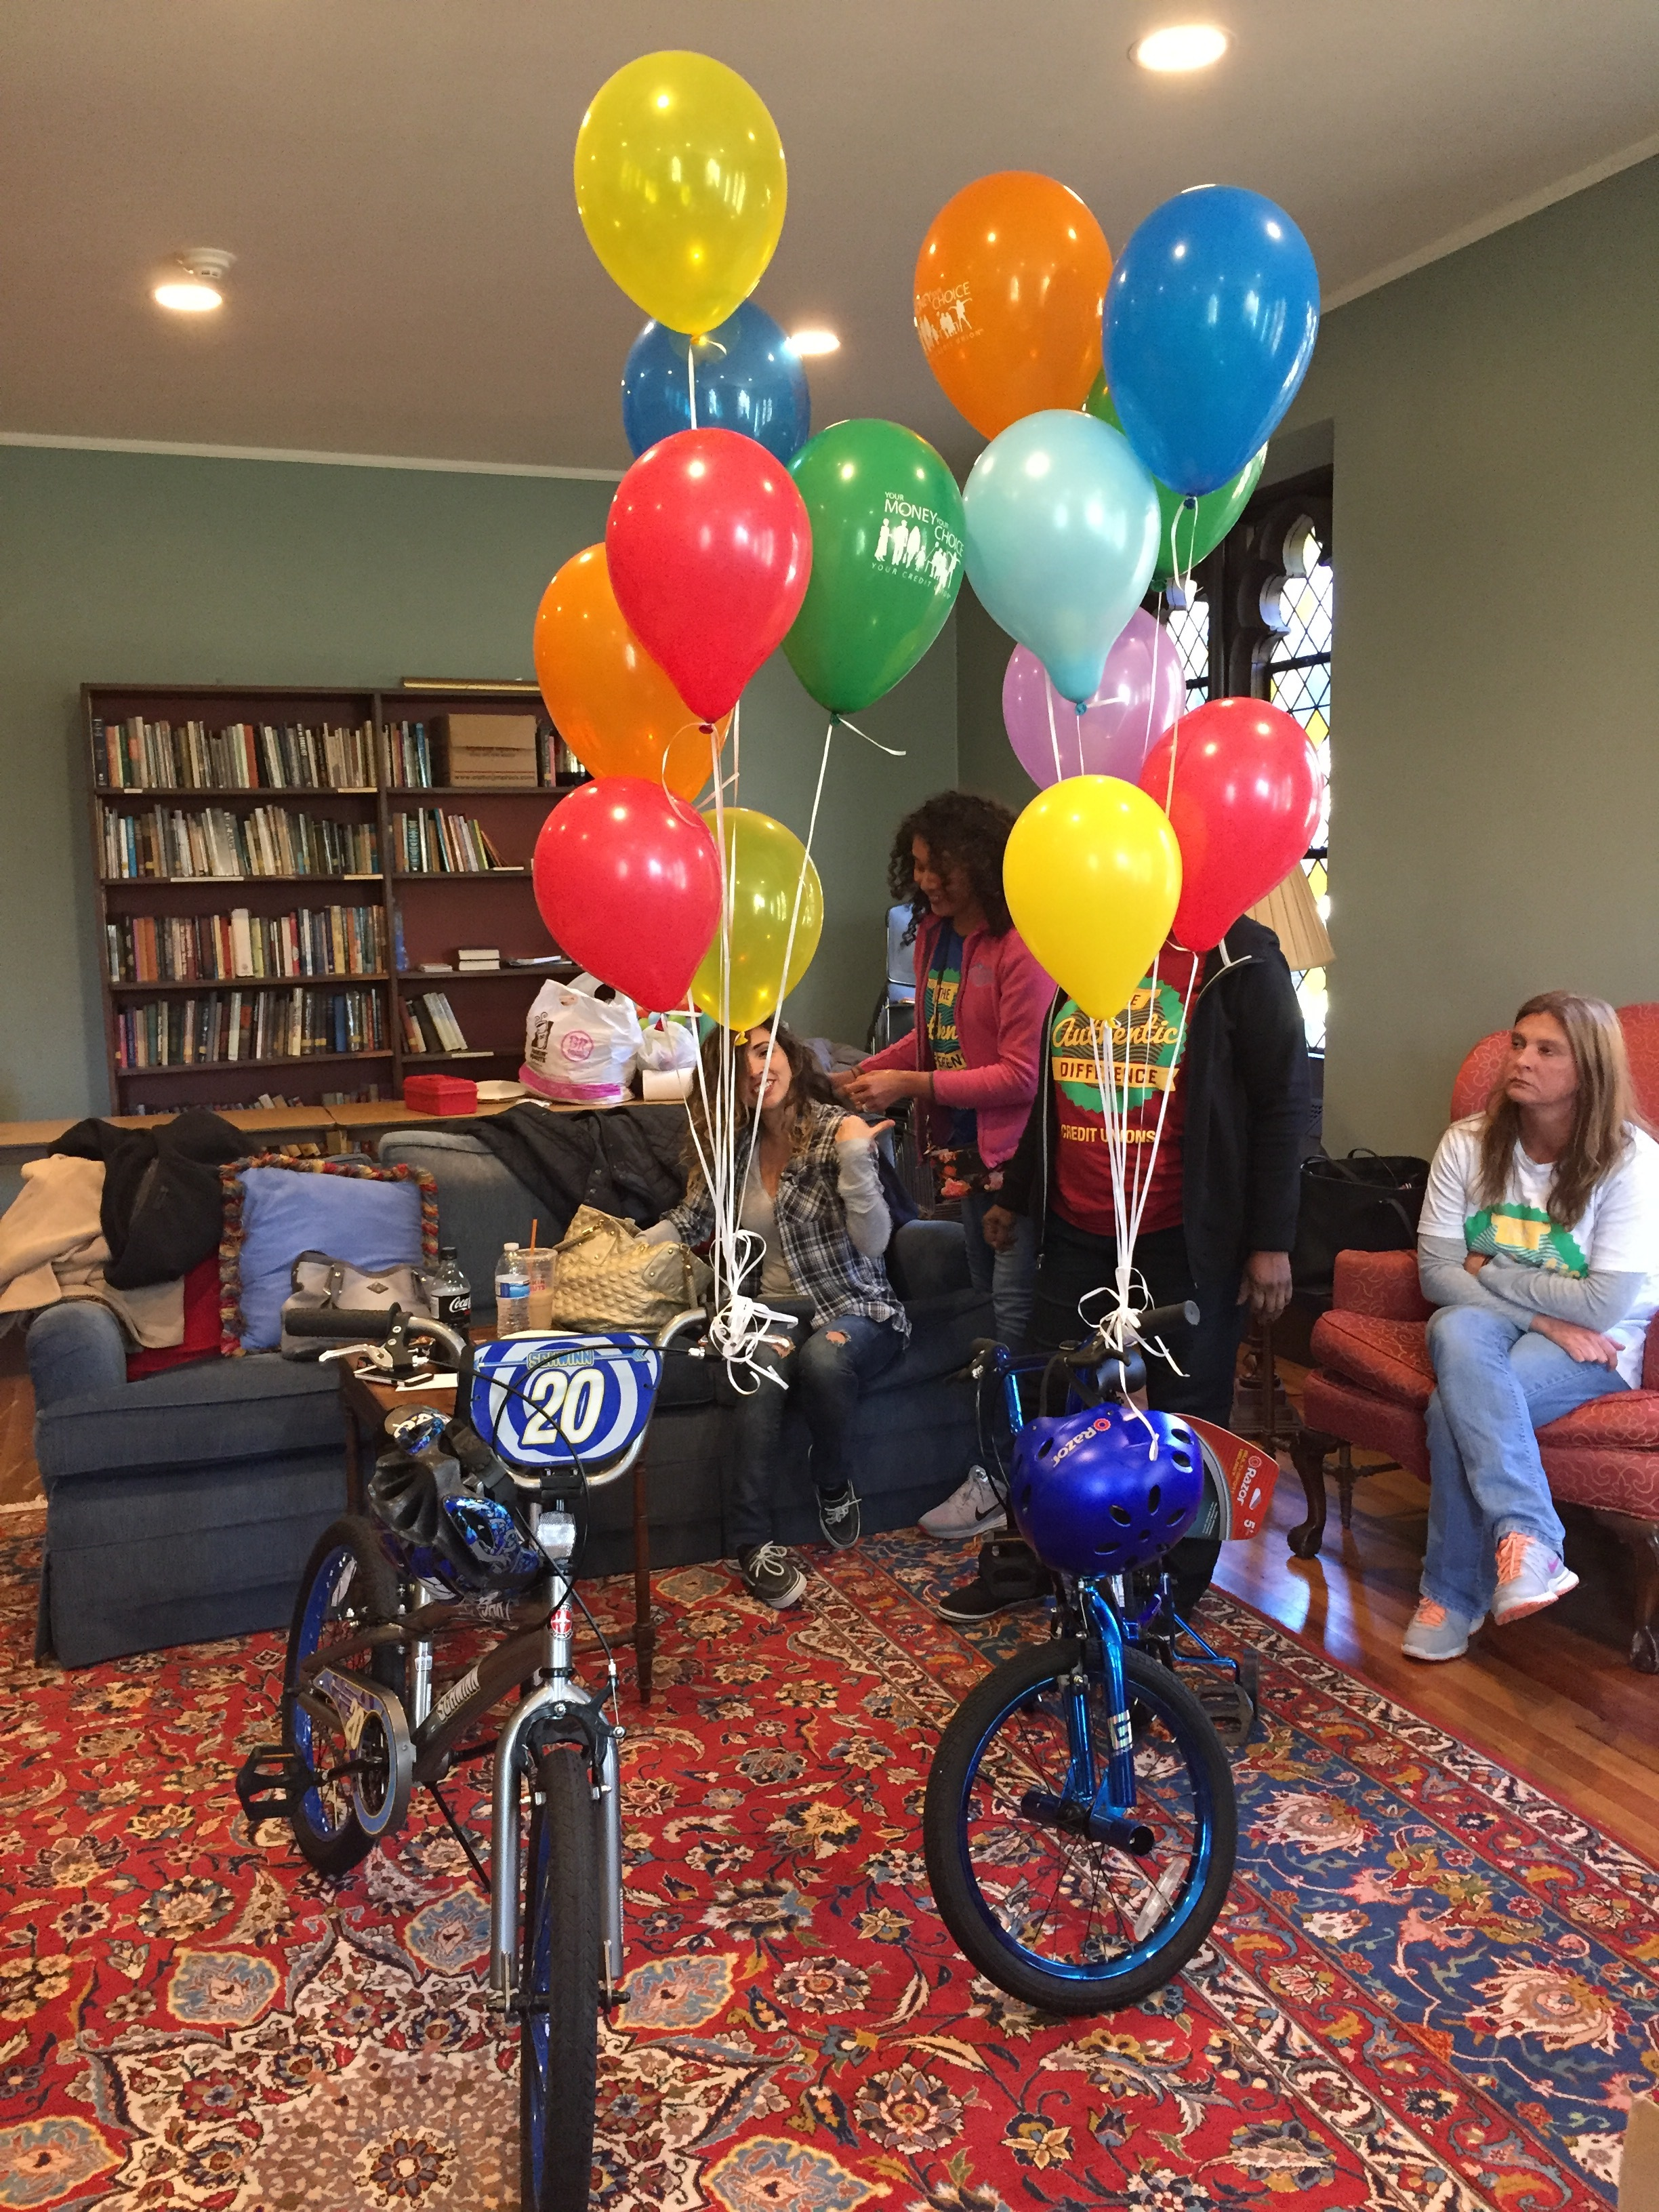 Balloons with bicycles